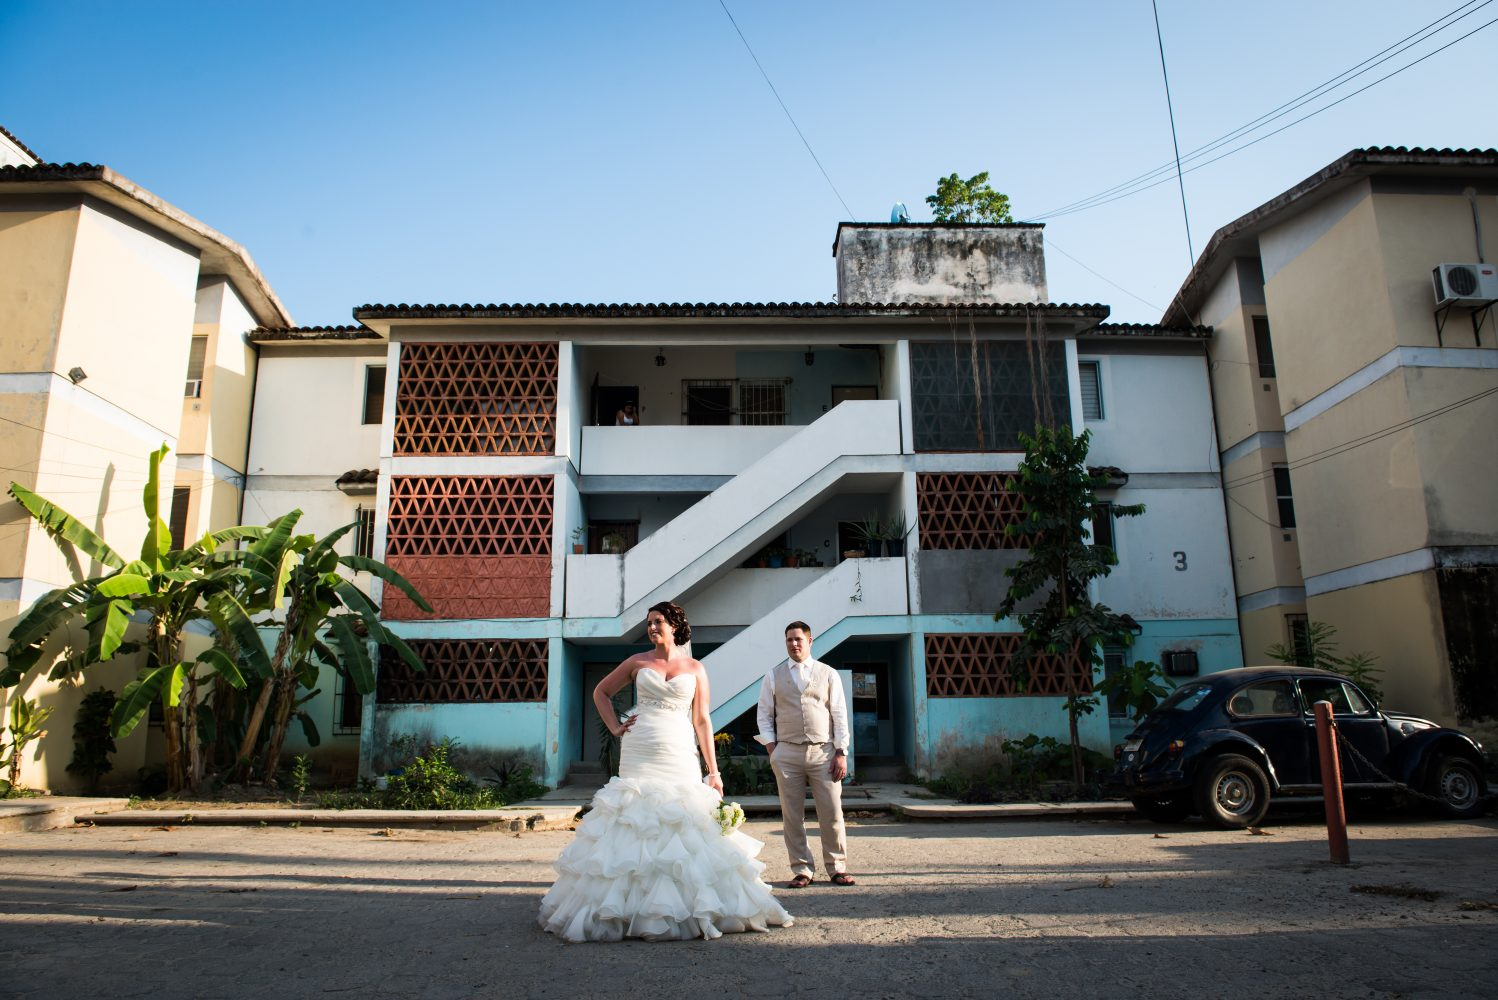 A beautiful day after session in the streets of Haultulco Mexico with the Bride and Groom | 3Haus Photographics